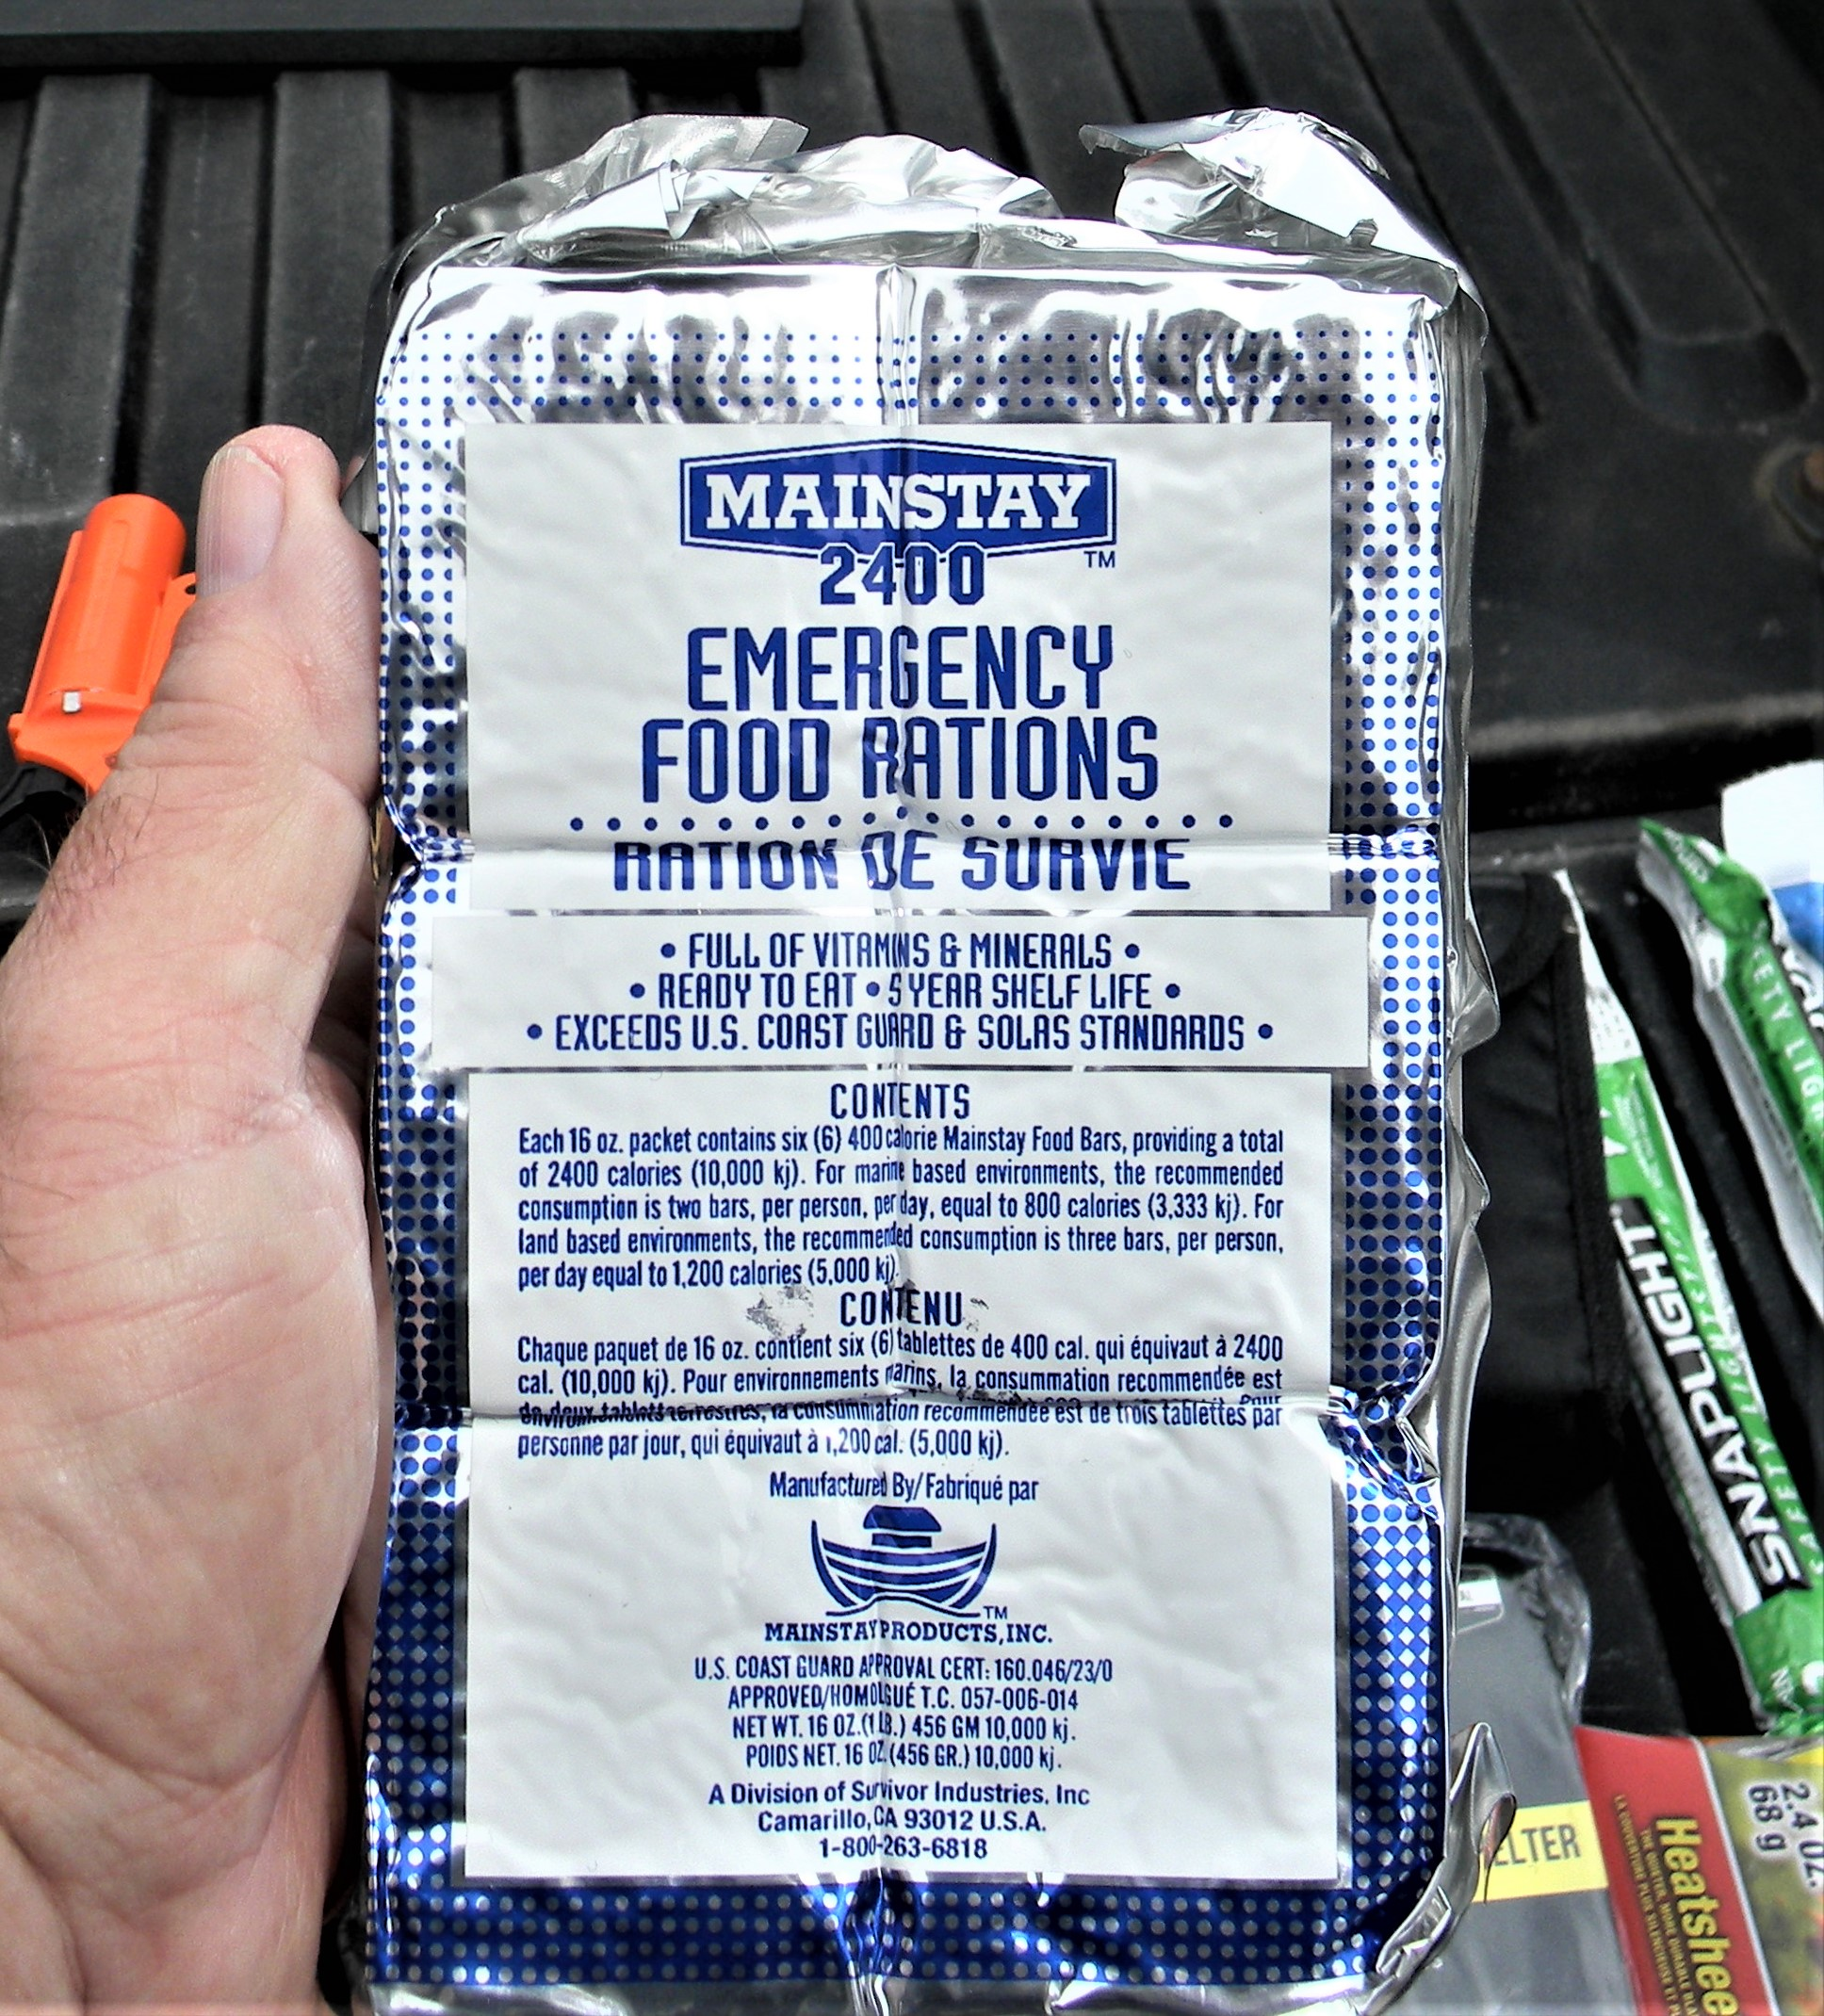 Vacuum-sealed emergency food rations